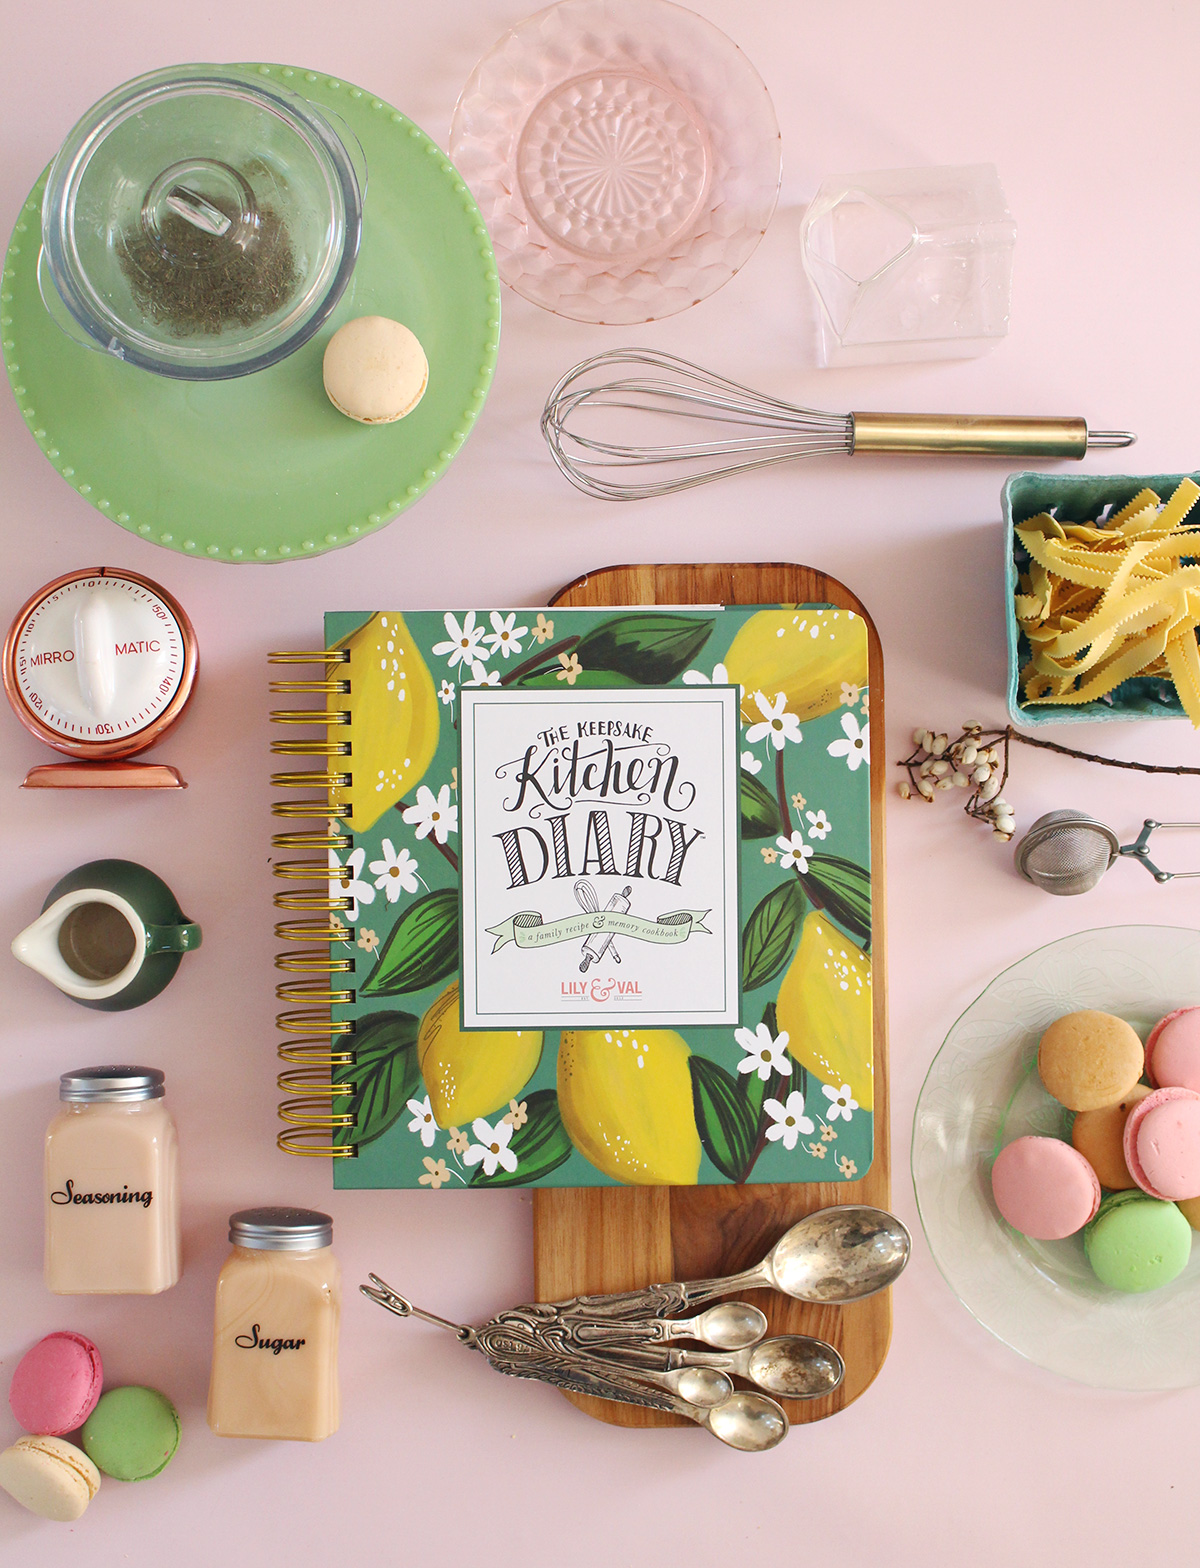 The Keepsake Kitchen Diary by Lily & Val is a one-of-a-kind family cookbook because we've made room for what makes the recipes special: The memories and stories that go with them!